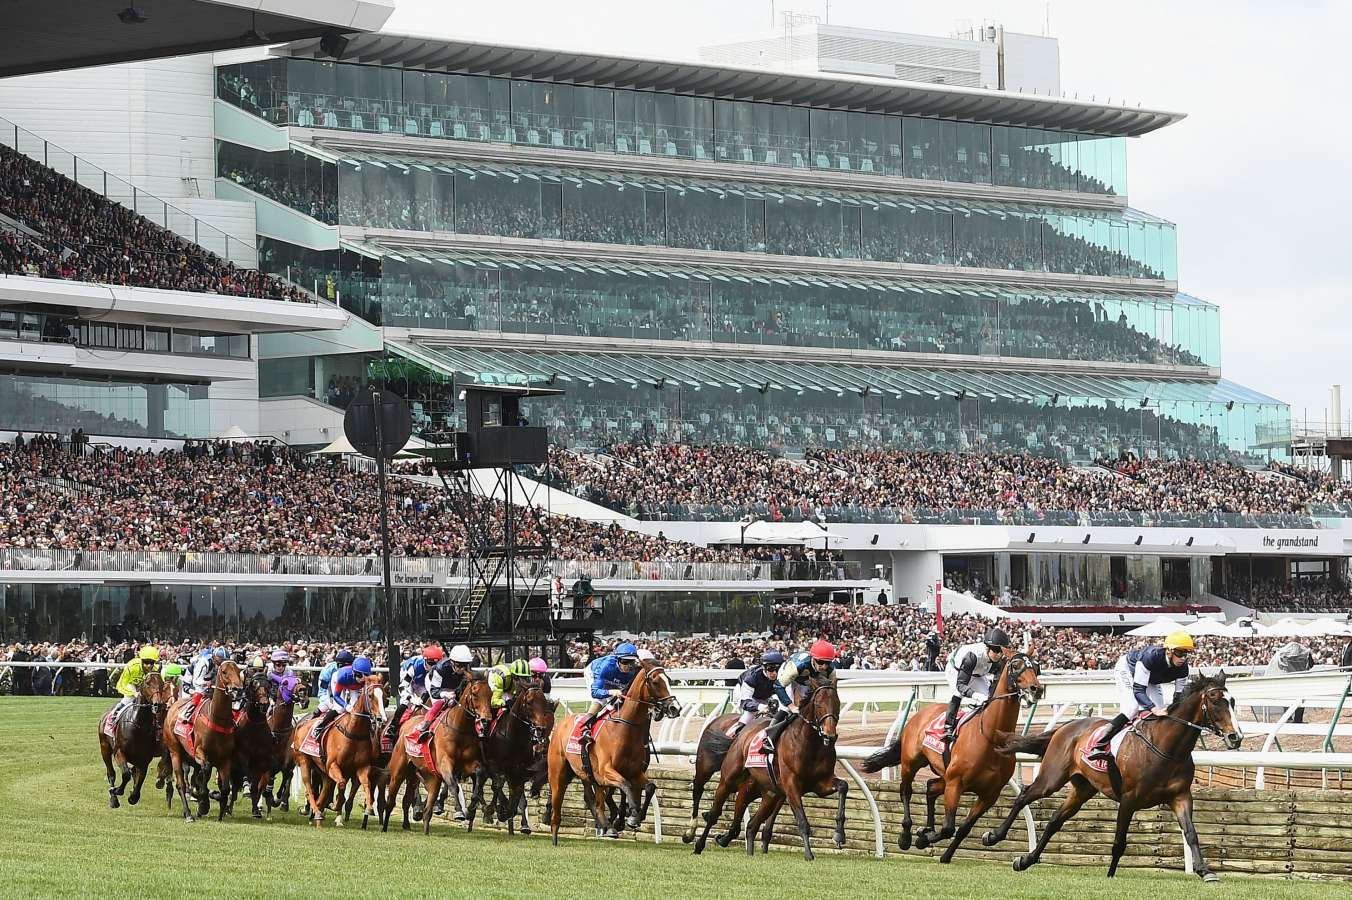 Has the Melbourne Cup ever been cancelled?